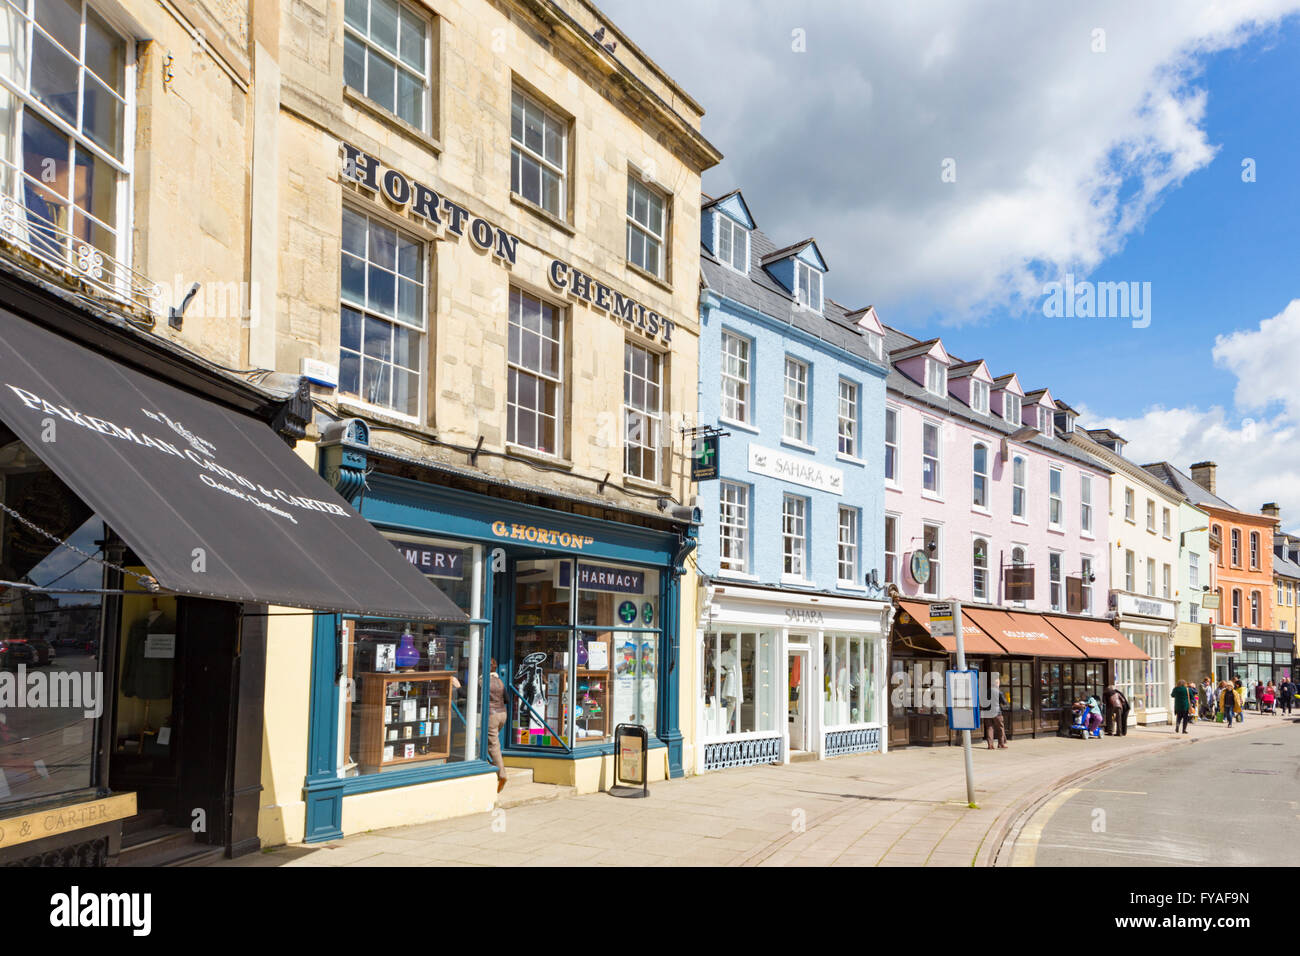 Attractive shops in the Cotswold town of Cirencester, Gloucestershire England, UK - Stock Image